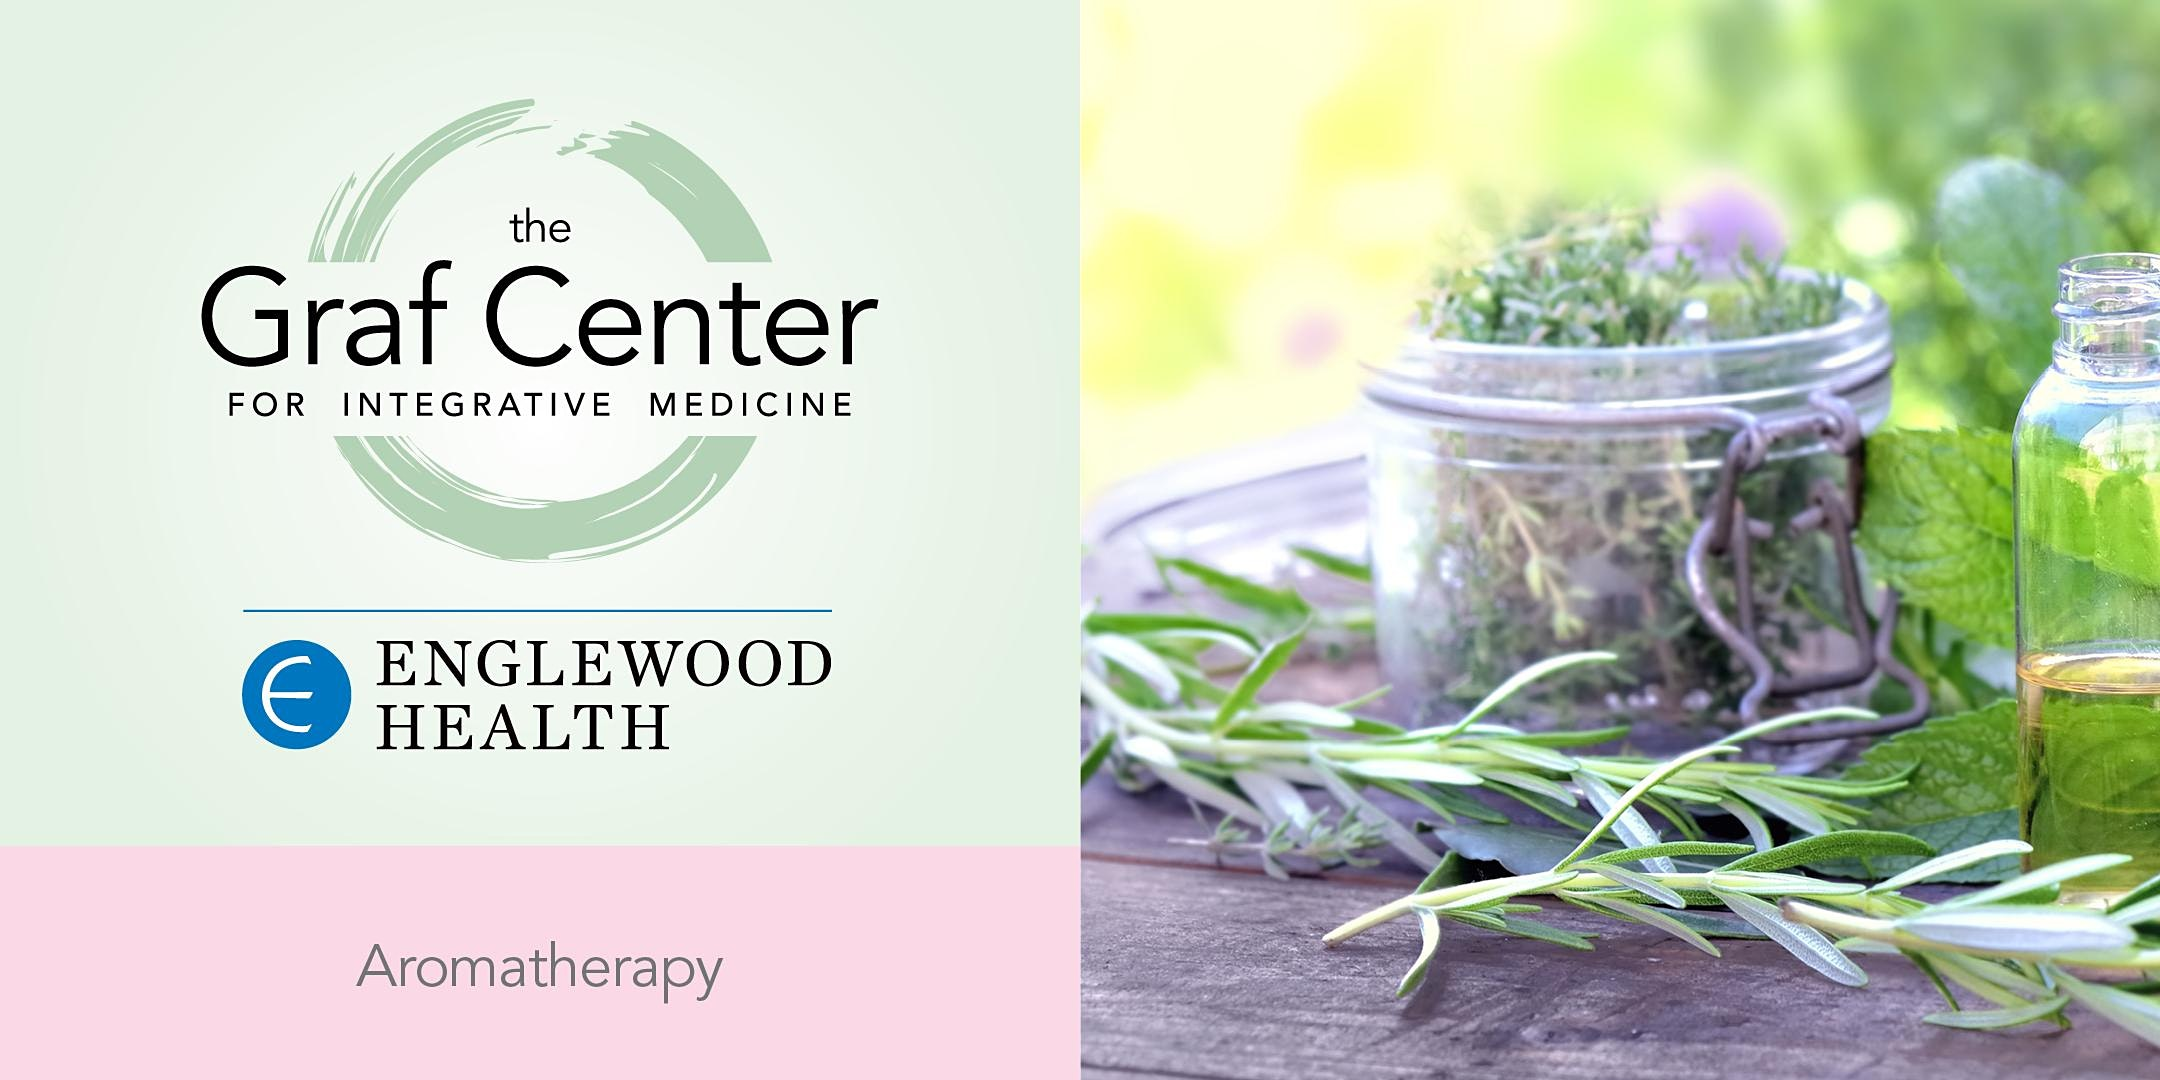 More info: Power of Aromatherapy - August 18